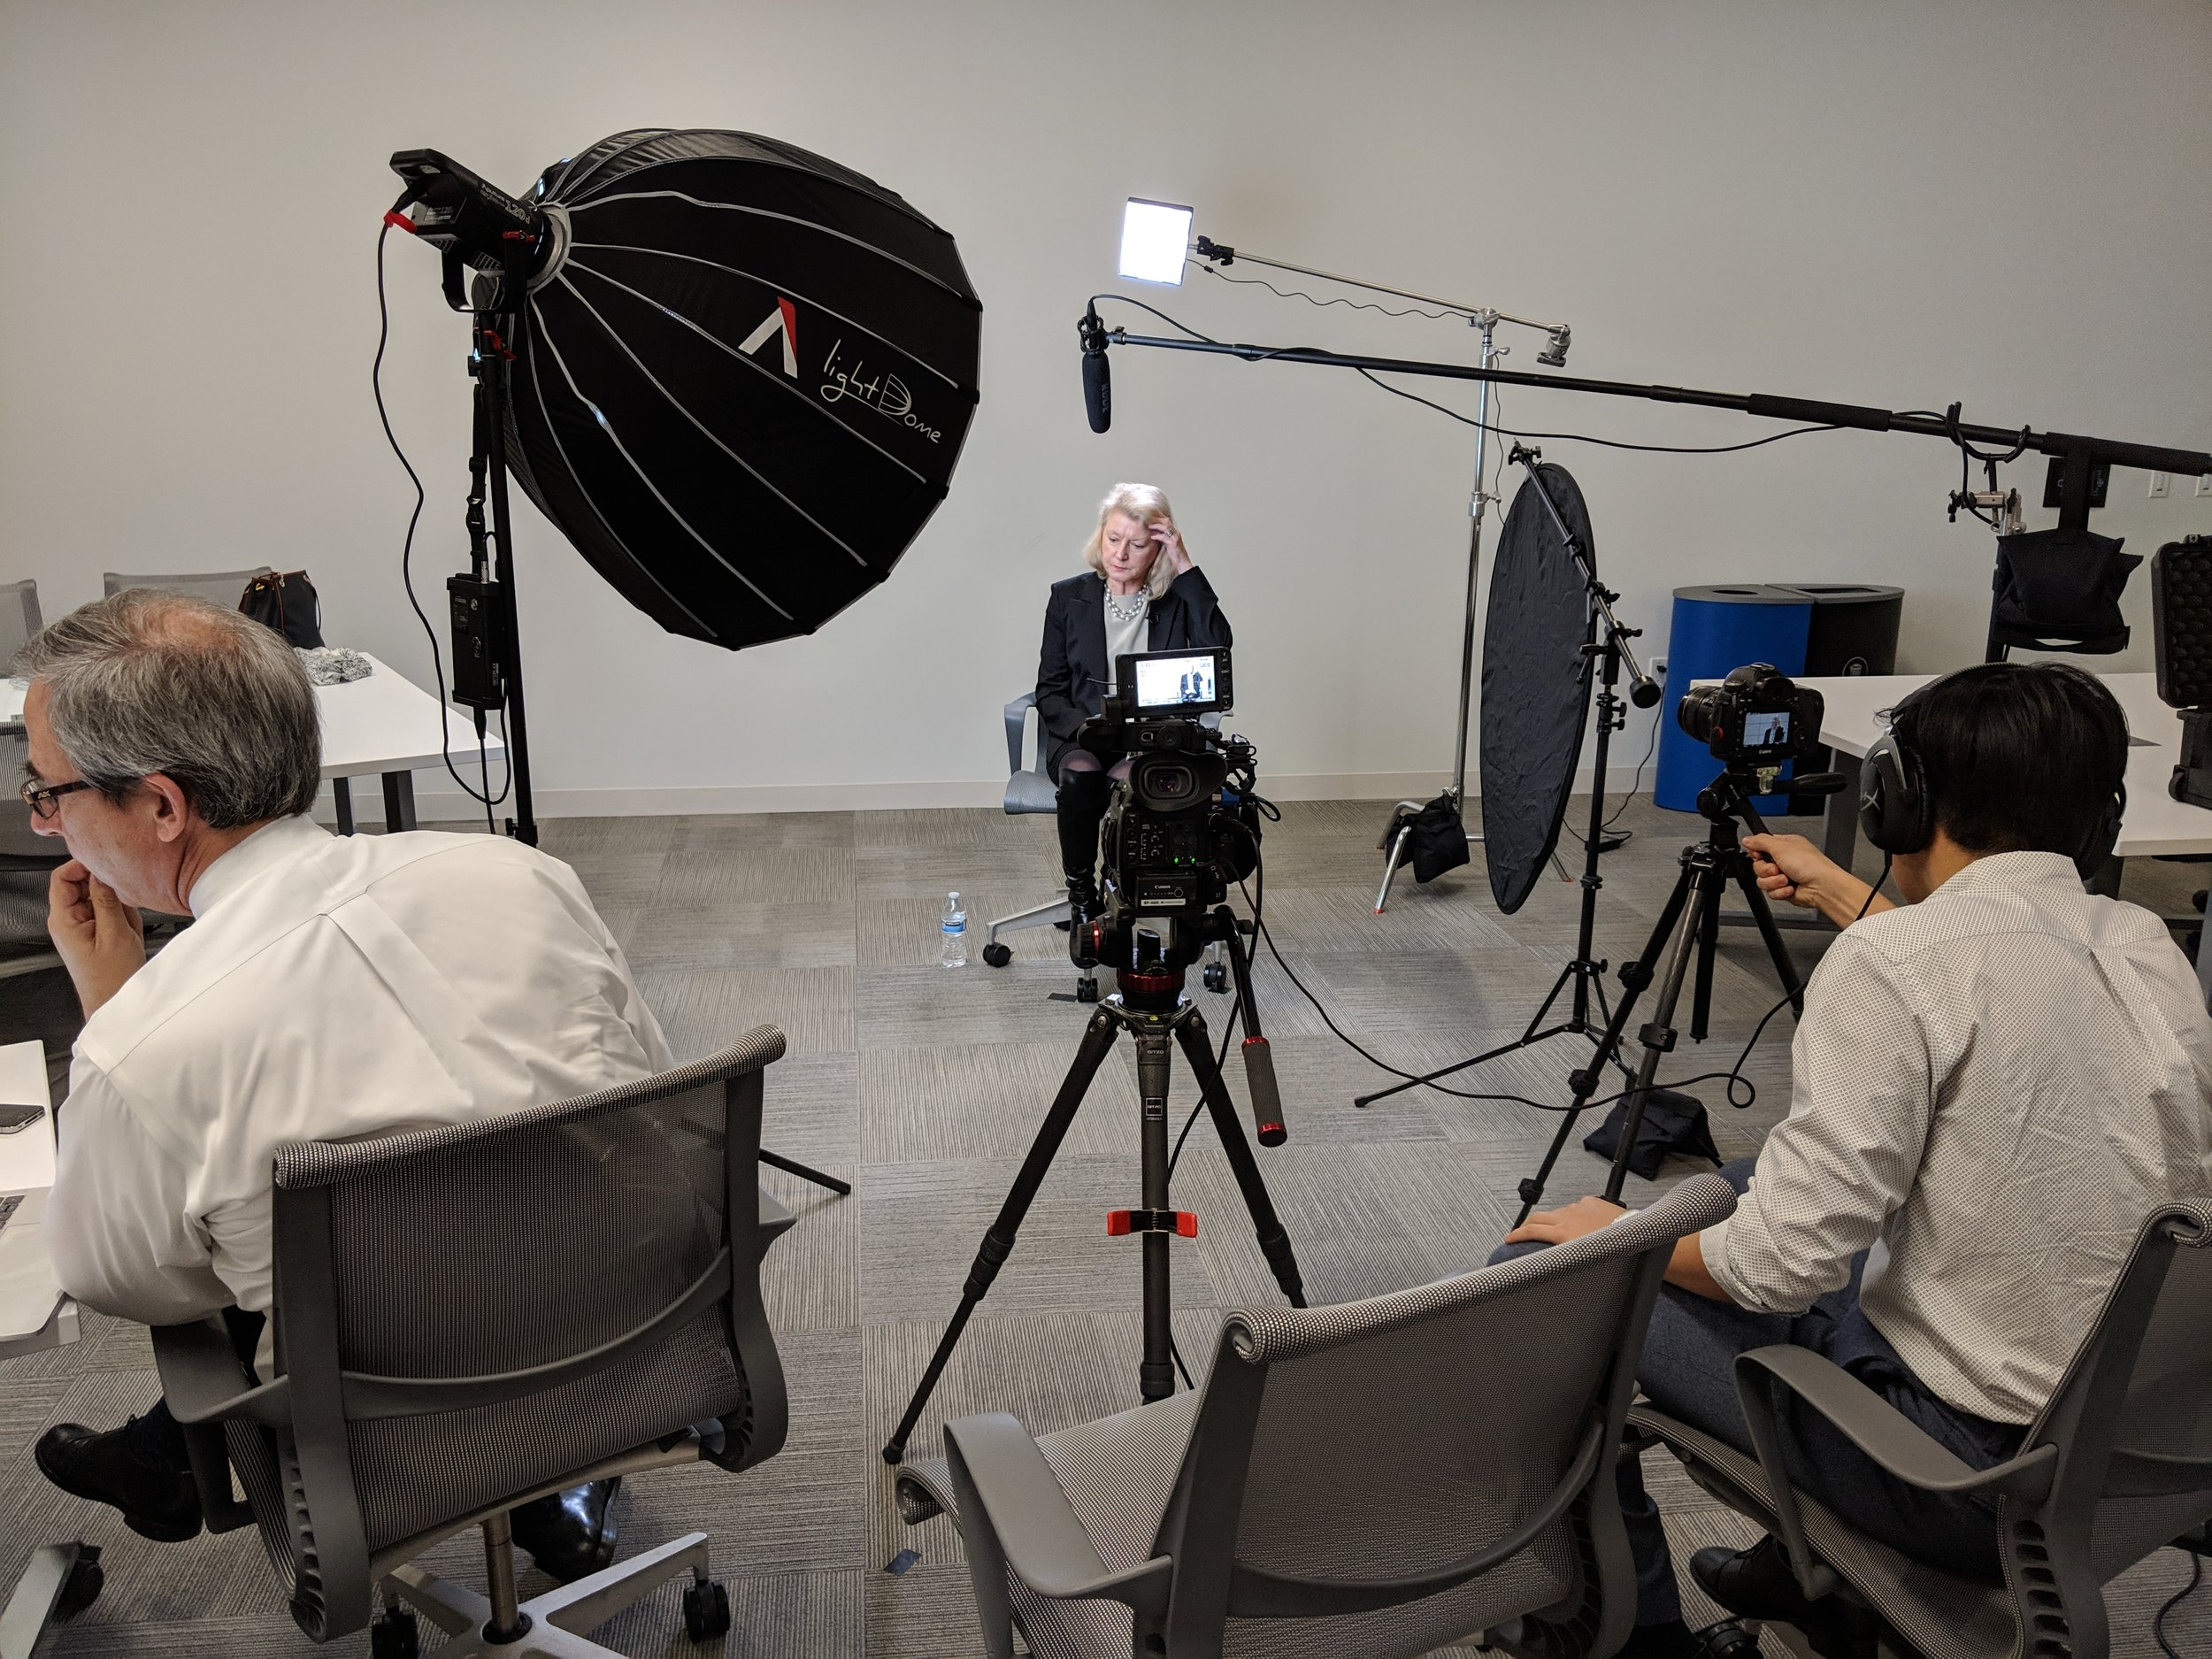 case study - MAPLE came to us for an interview series featuring executives from their member organizations.